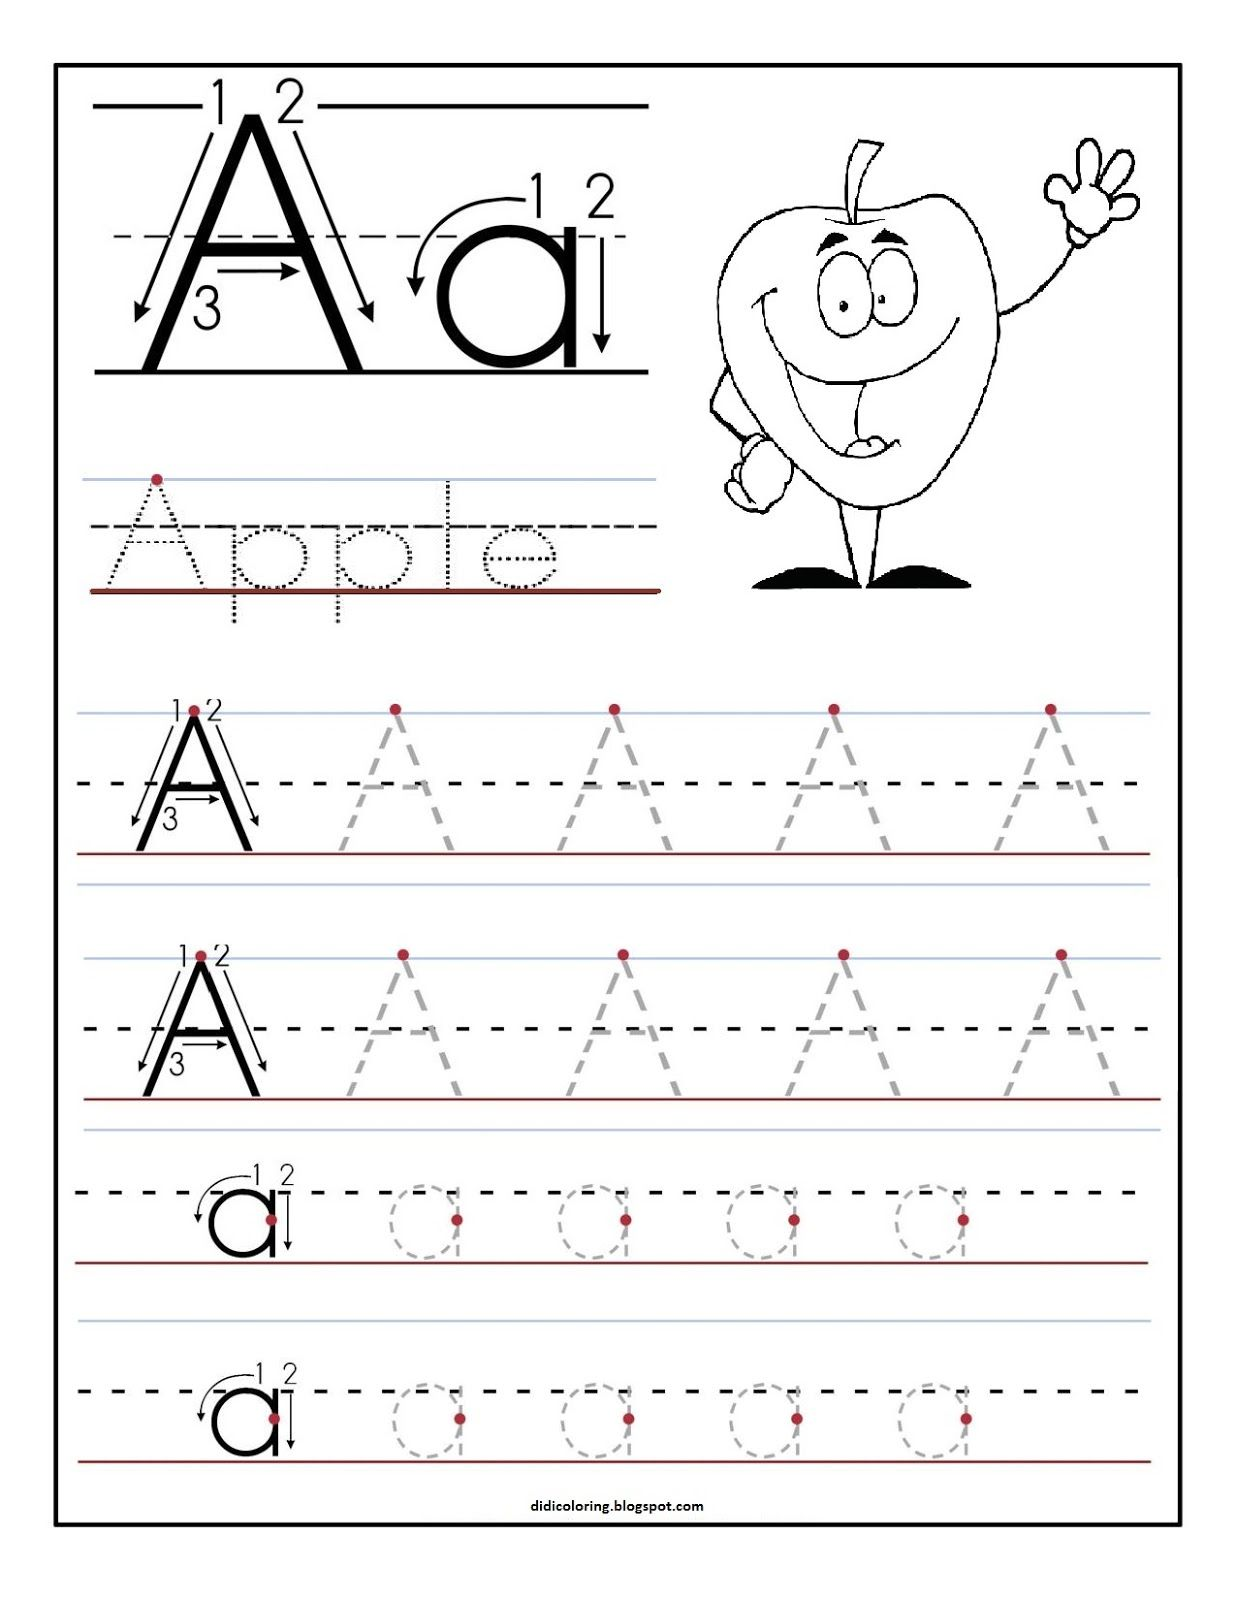 Free printable worksheet letter a for your child to learn and write free printable worksheet letter a for your child to learn and write didi coloring page spiritdancerdesigns Images